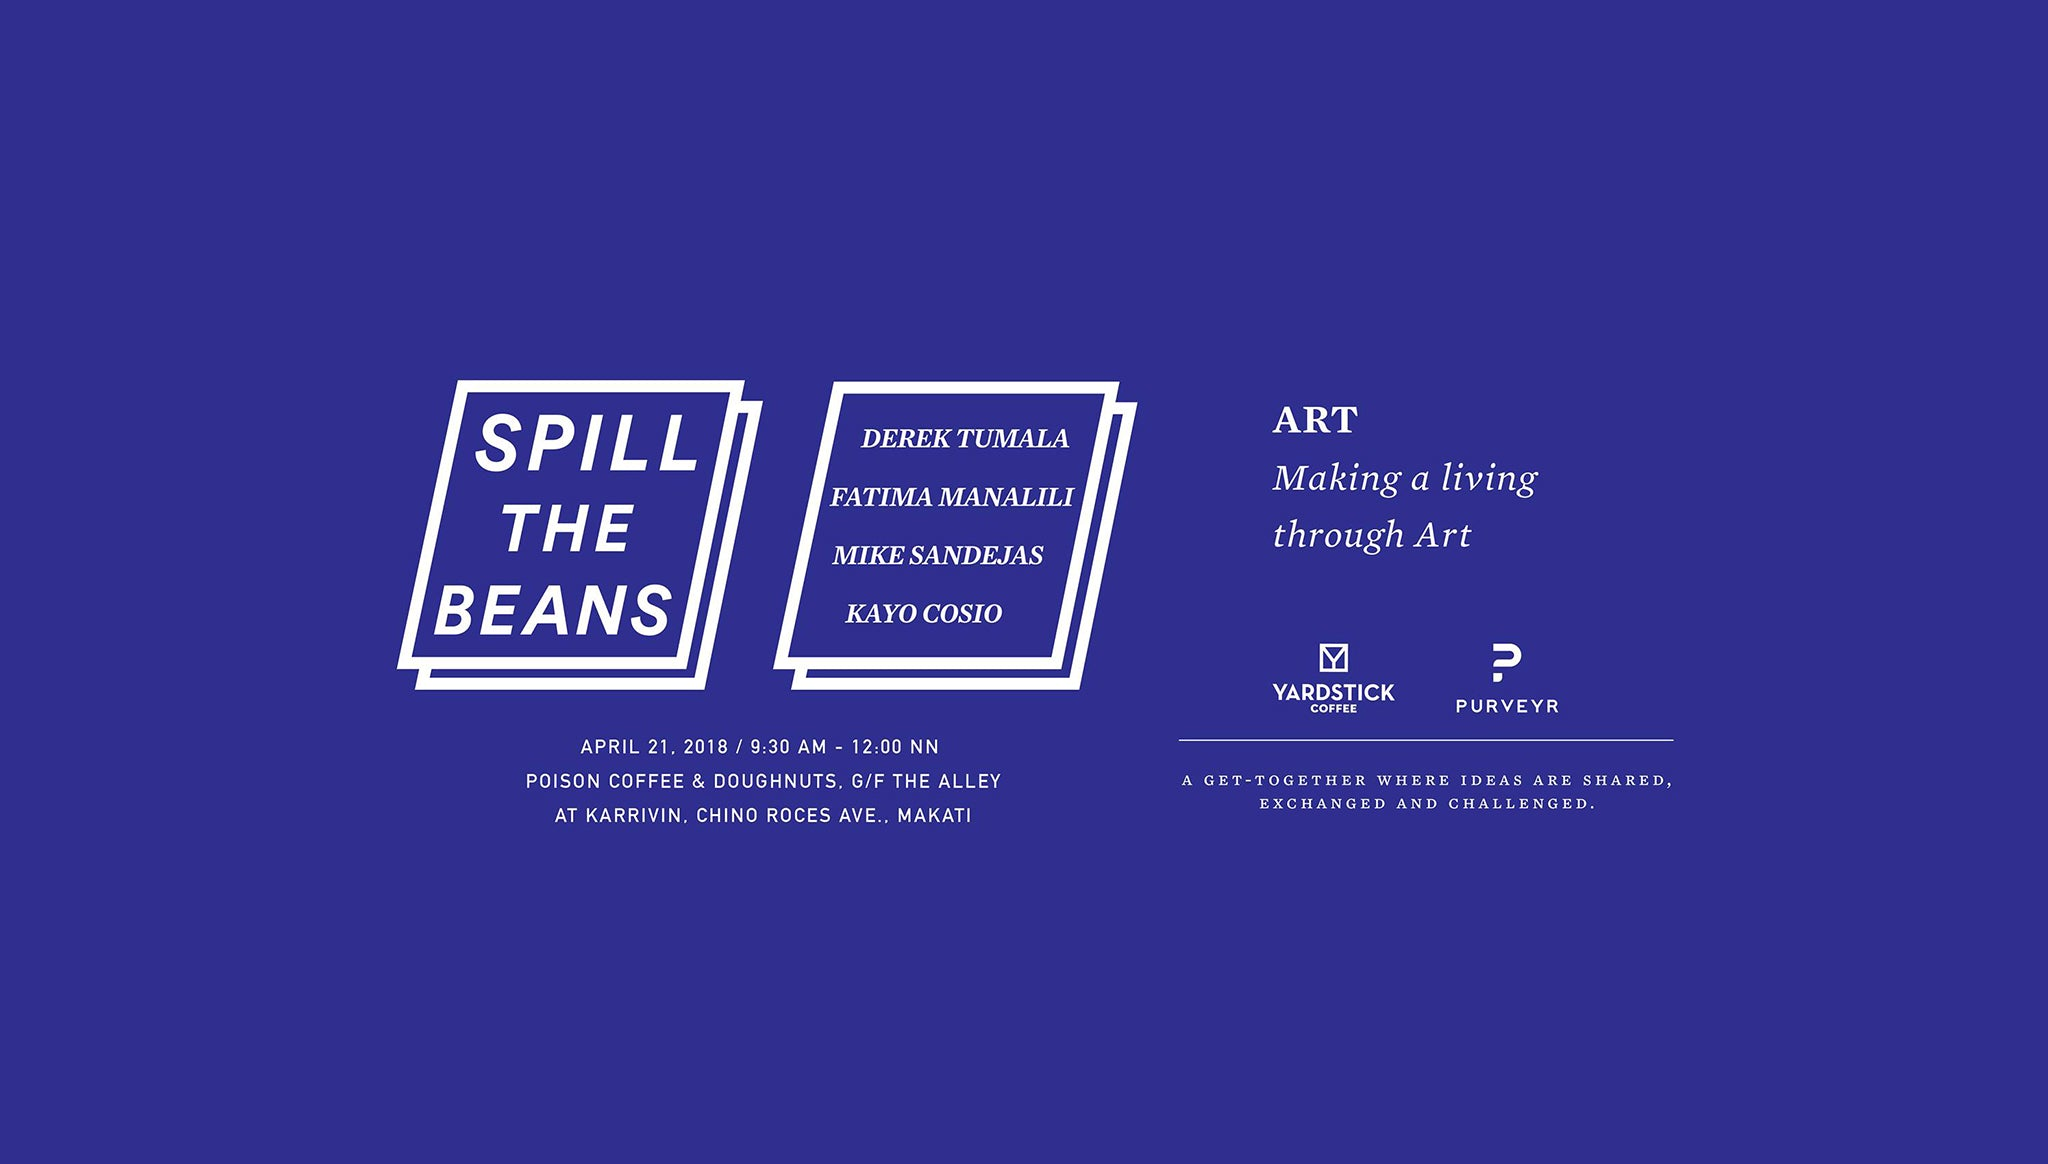 Spill the Beans (April 2018)